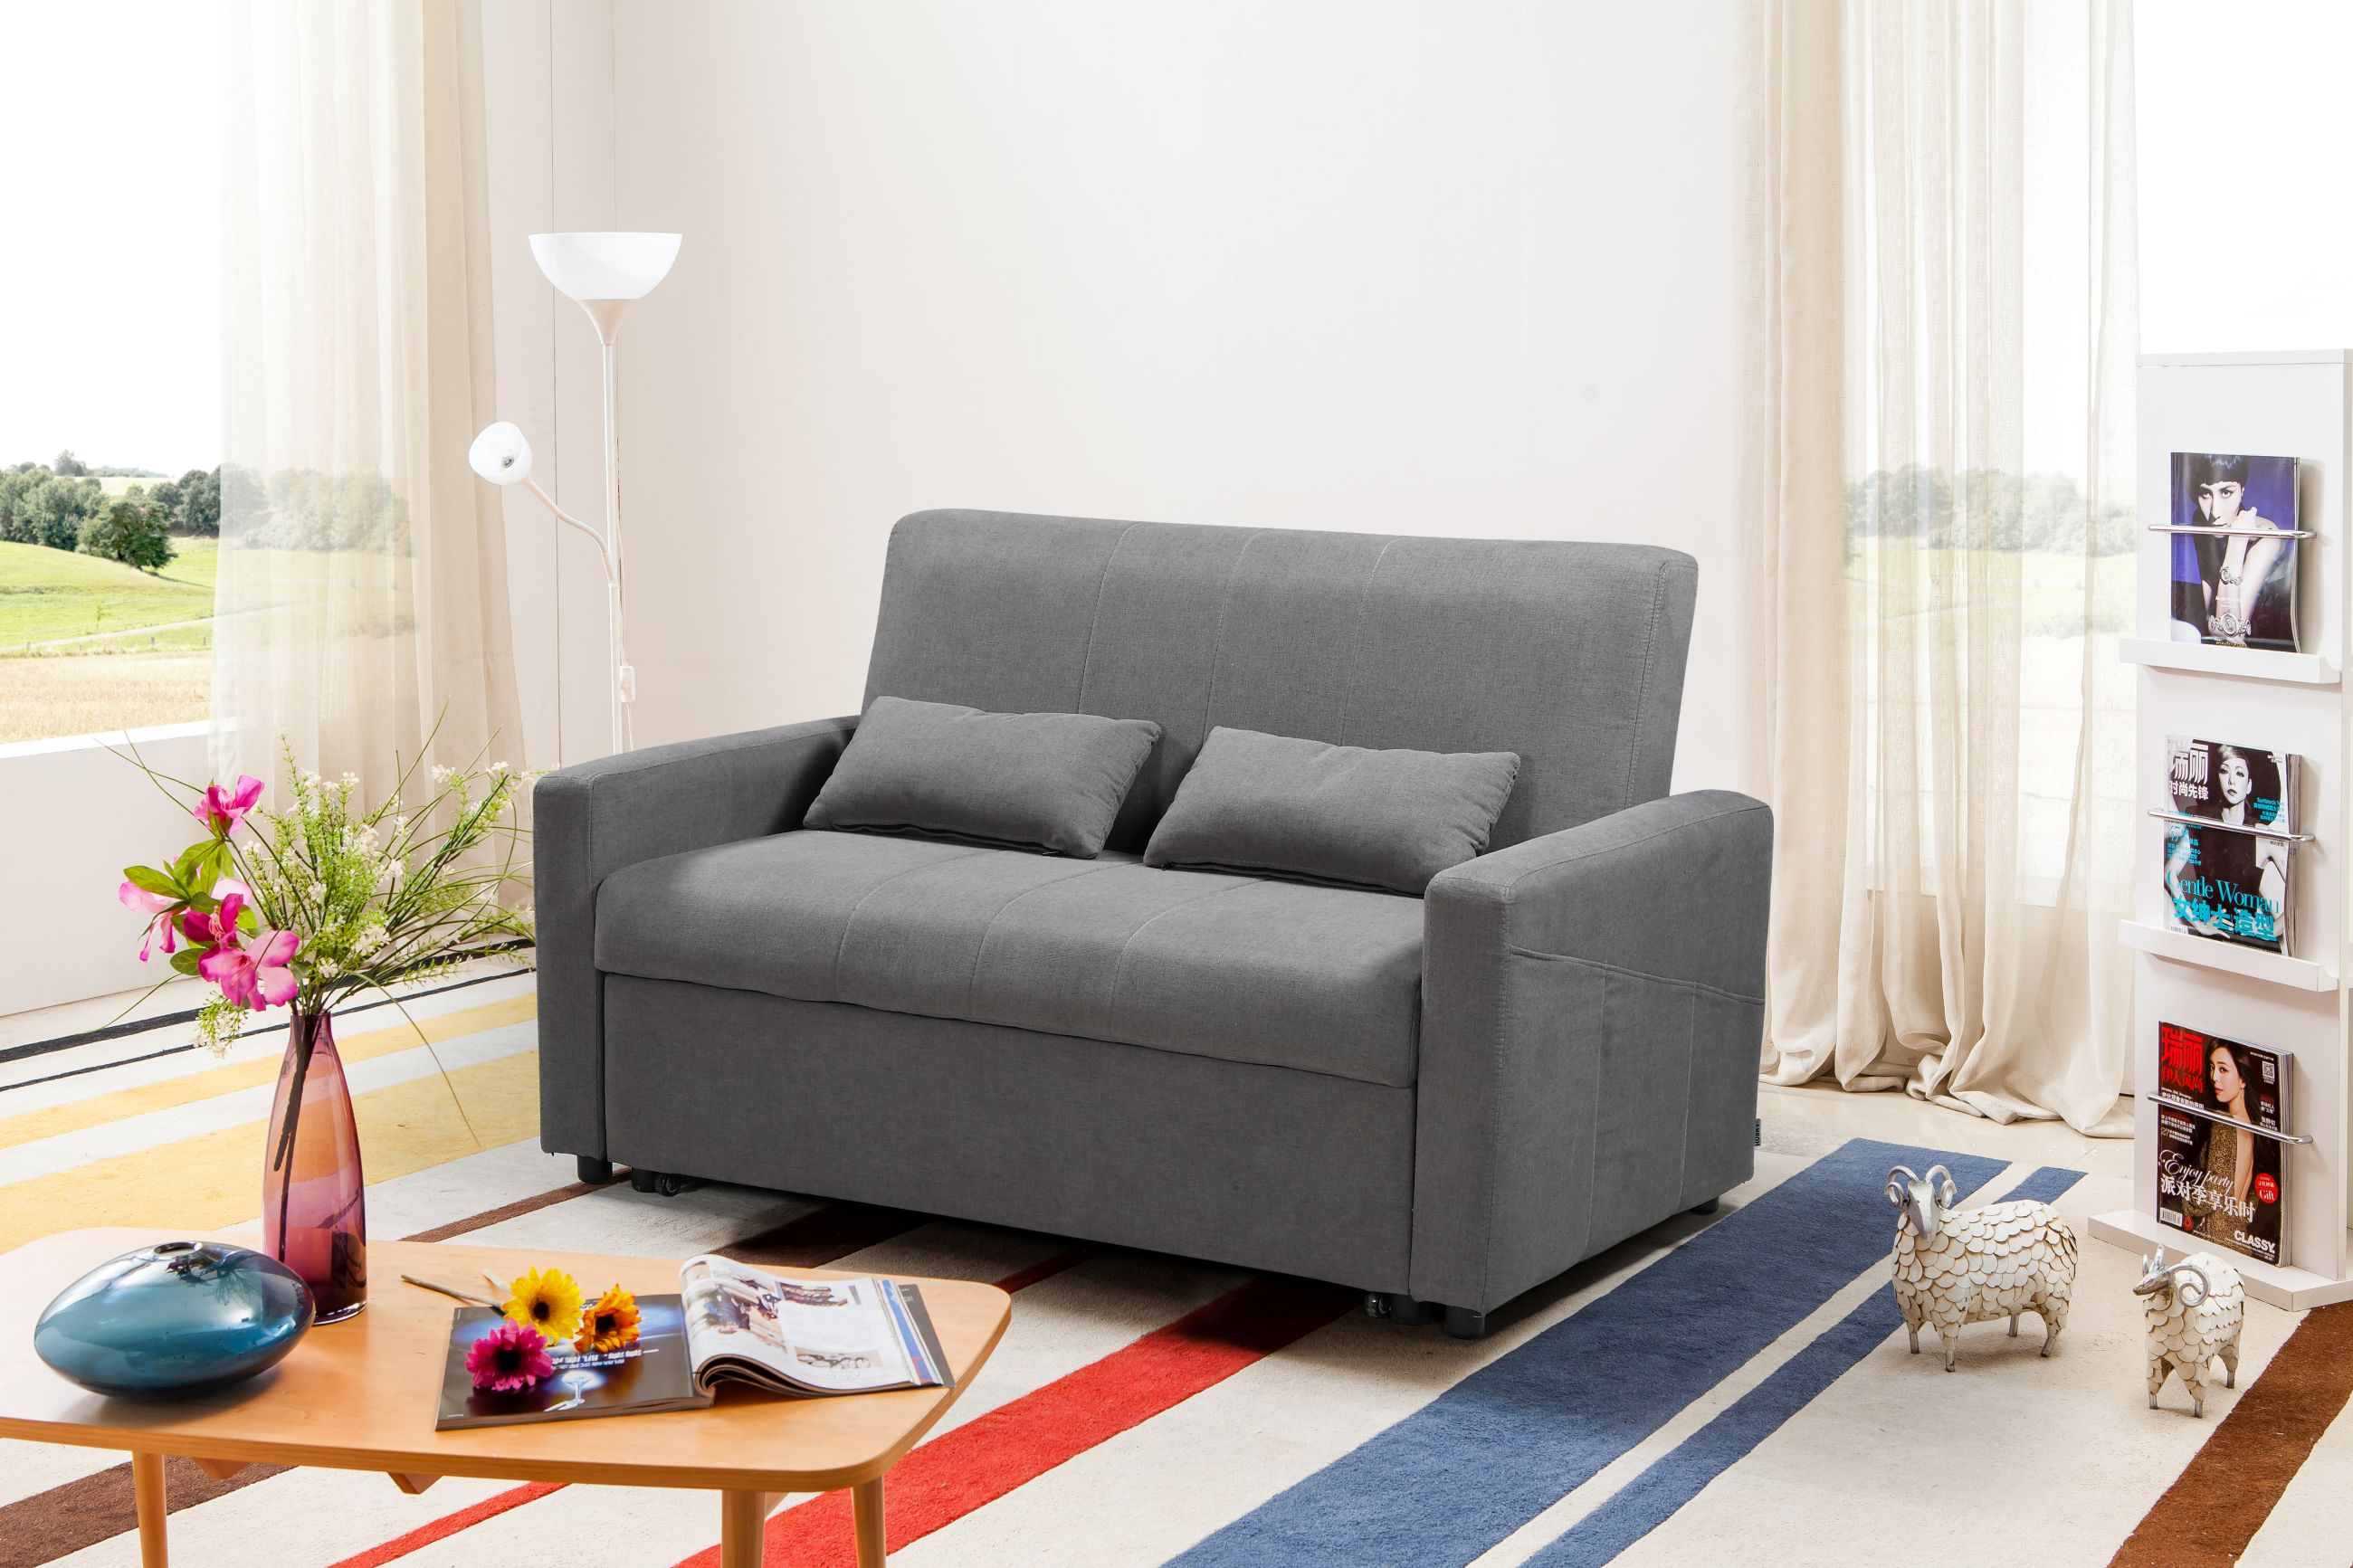 Admirable Transformer Convertible Loveseat Bed Grey Caraccident5 Cool Chair Designs And Ideas Caraccident5Info